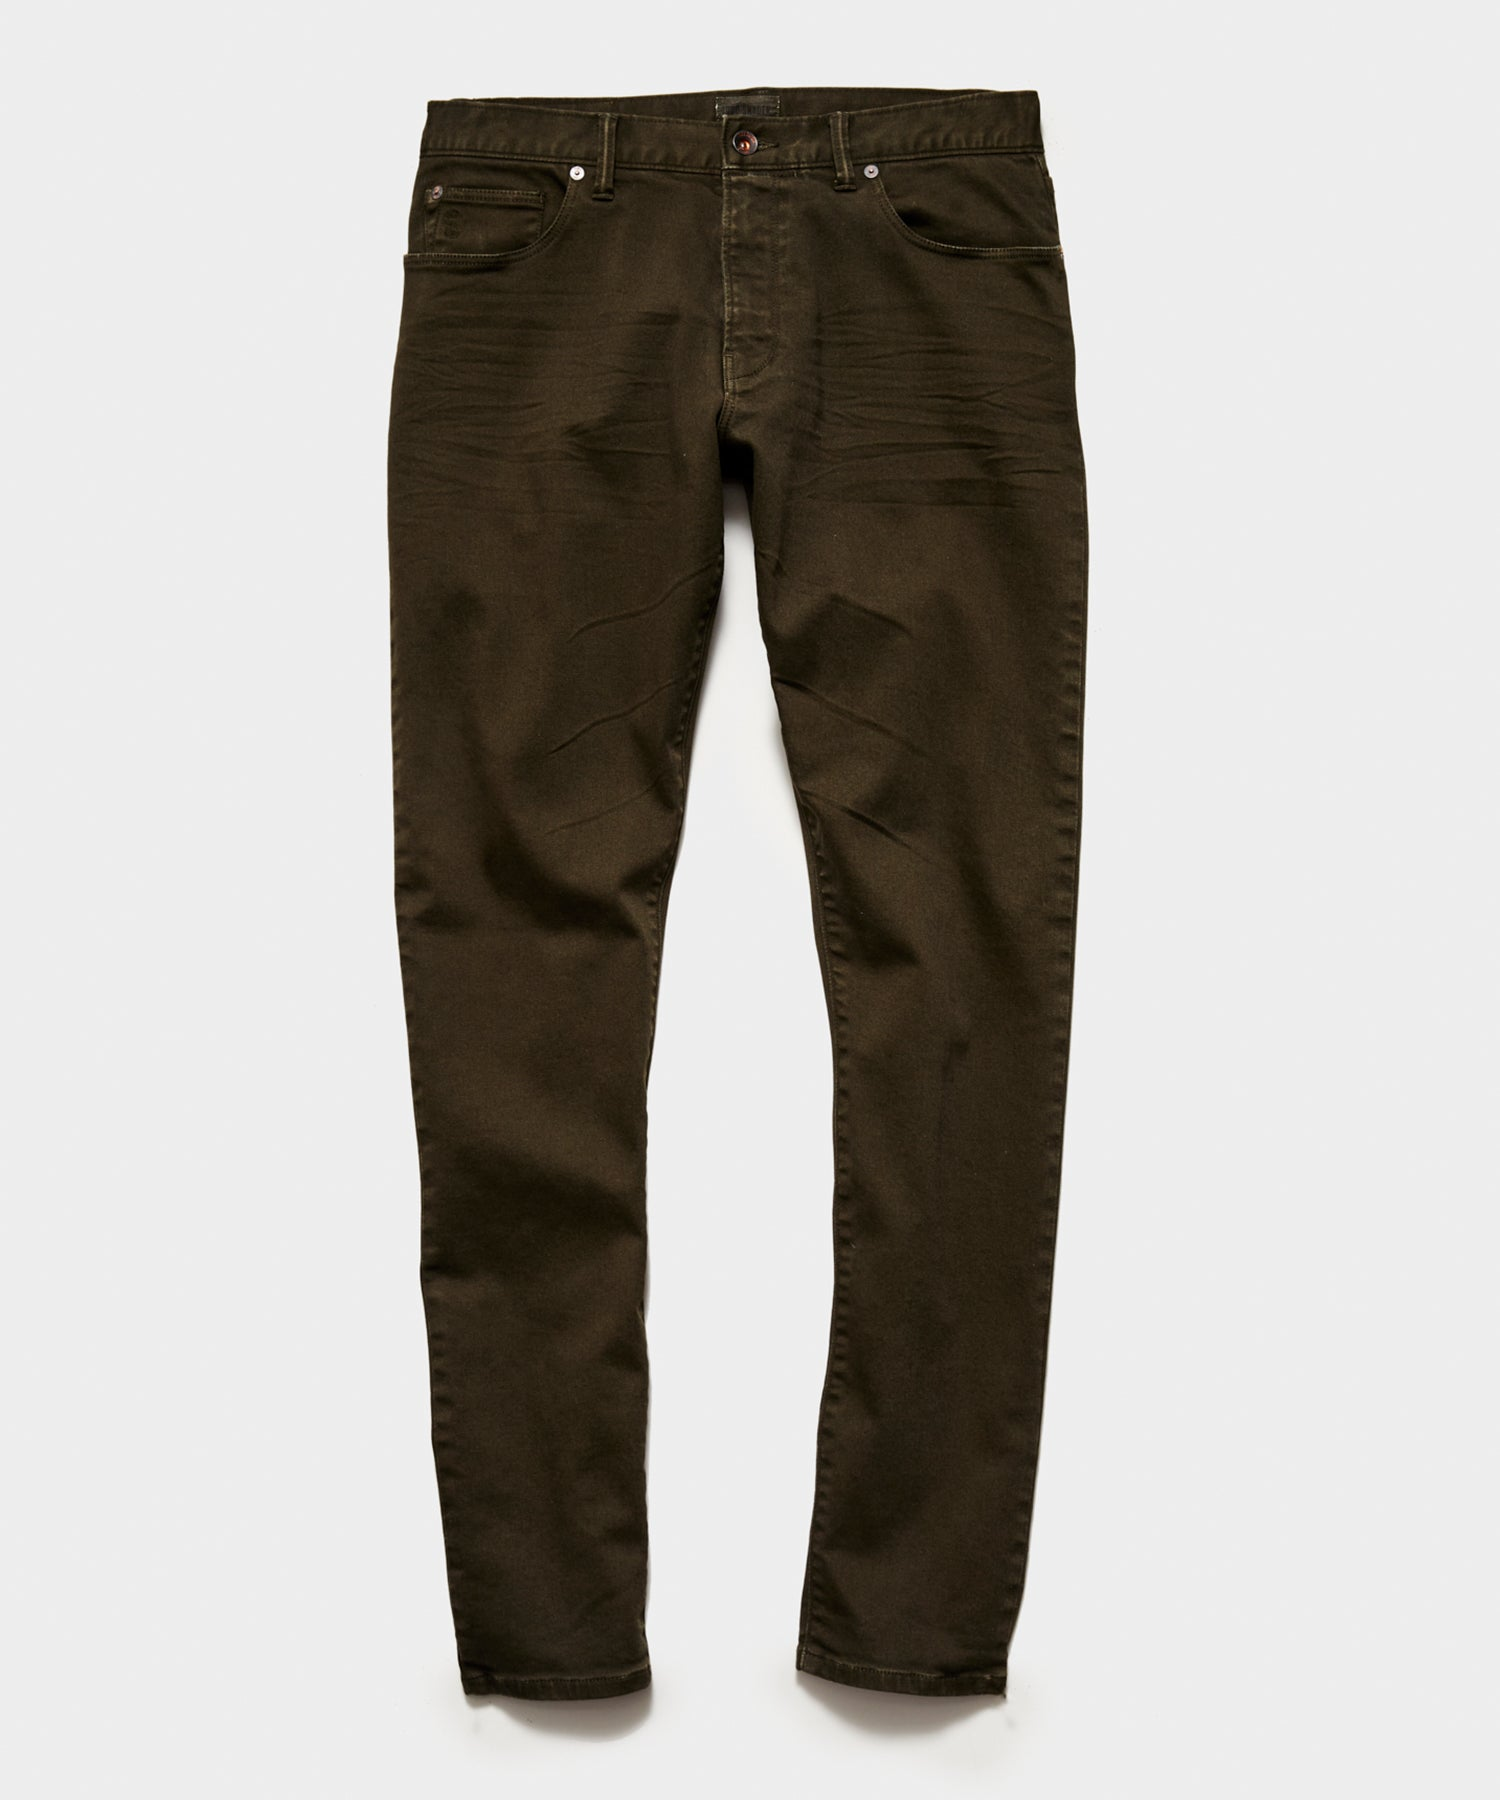 SLIM FIT 5-POCKET CHINO IN SURPLUS OLIVE